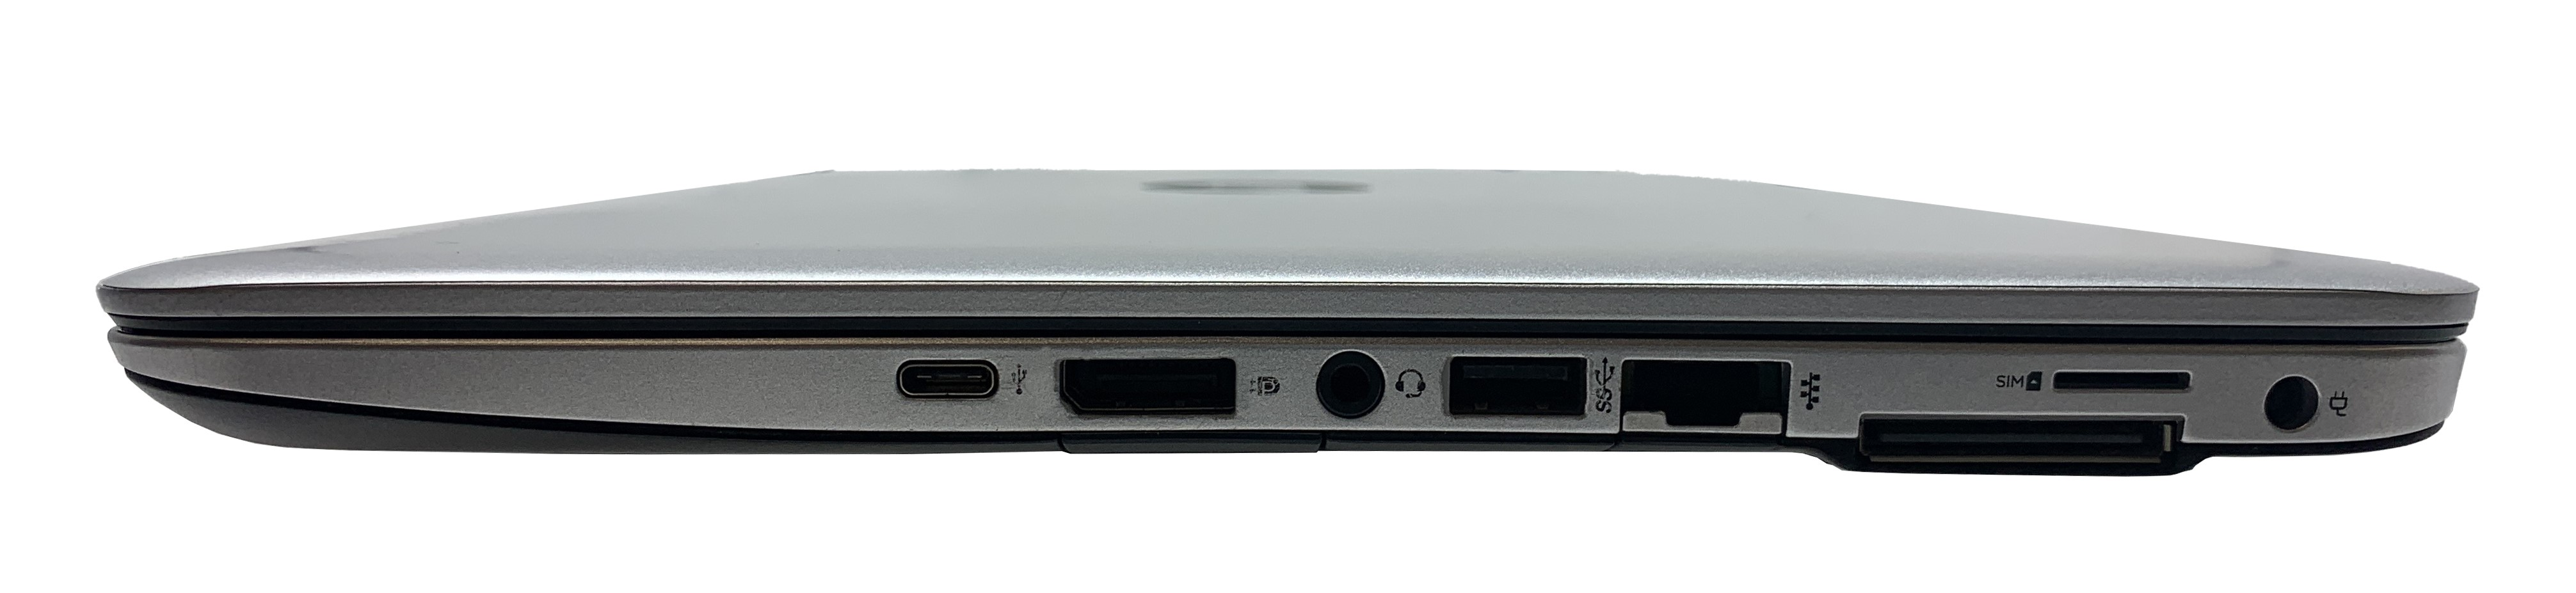 HP 840 G3 right side